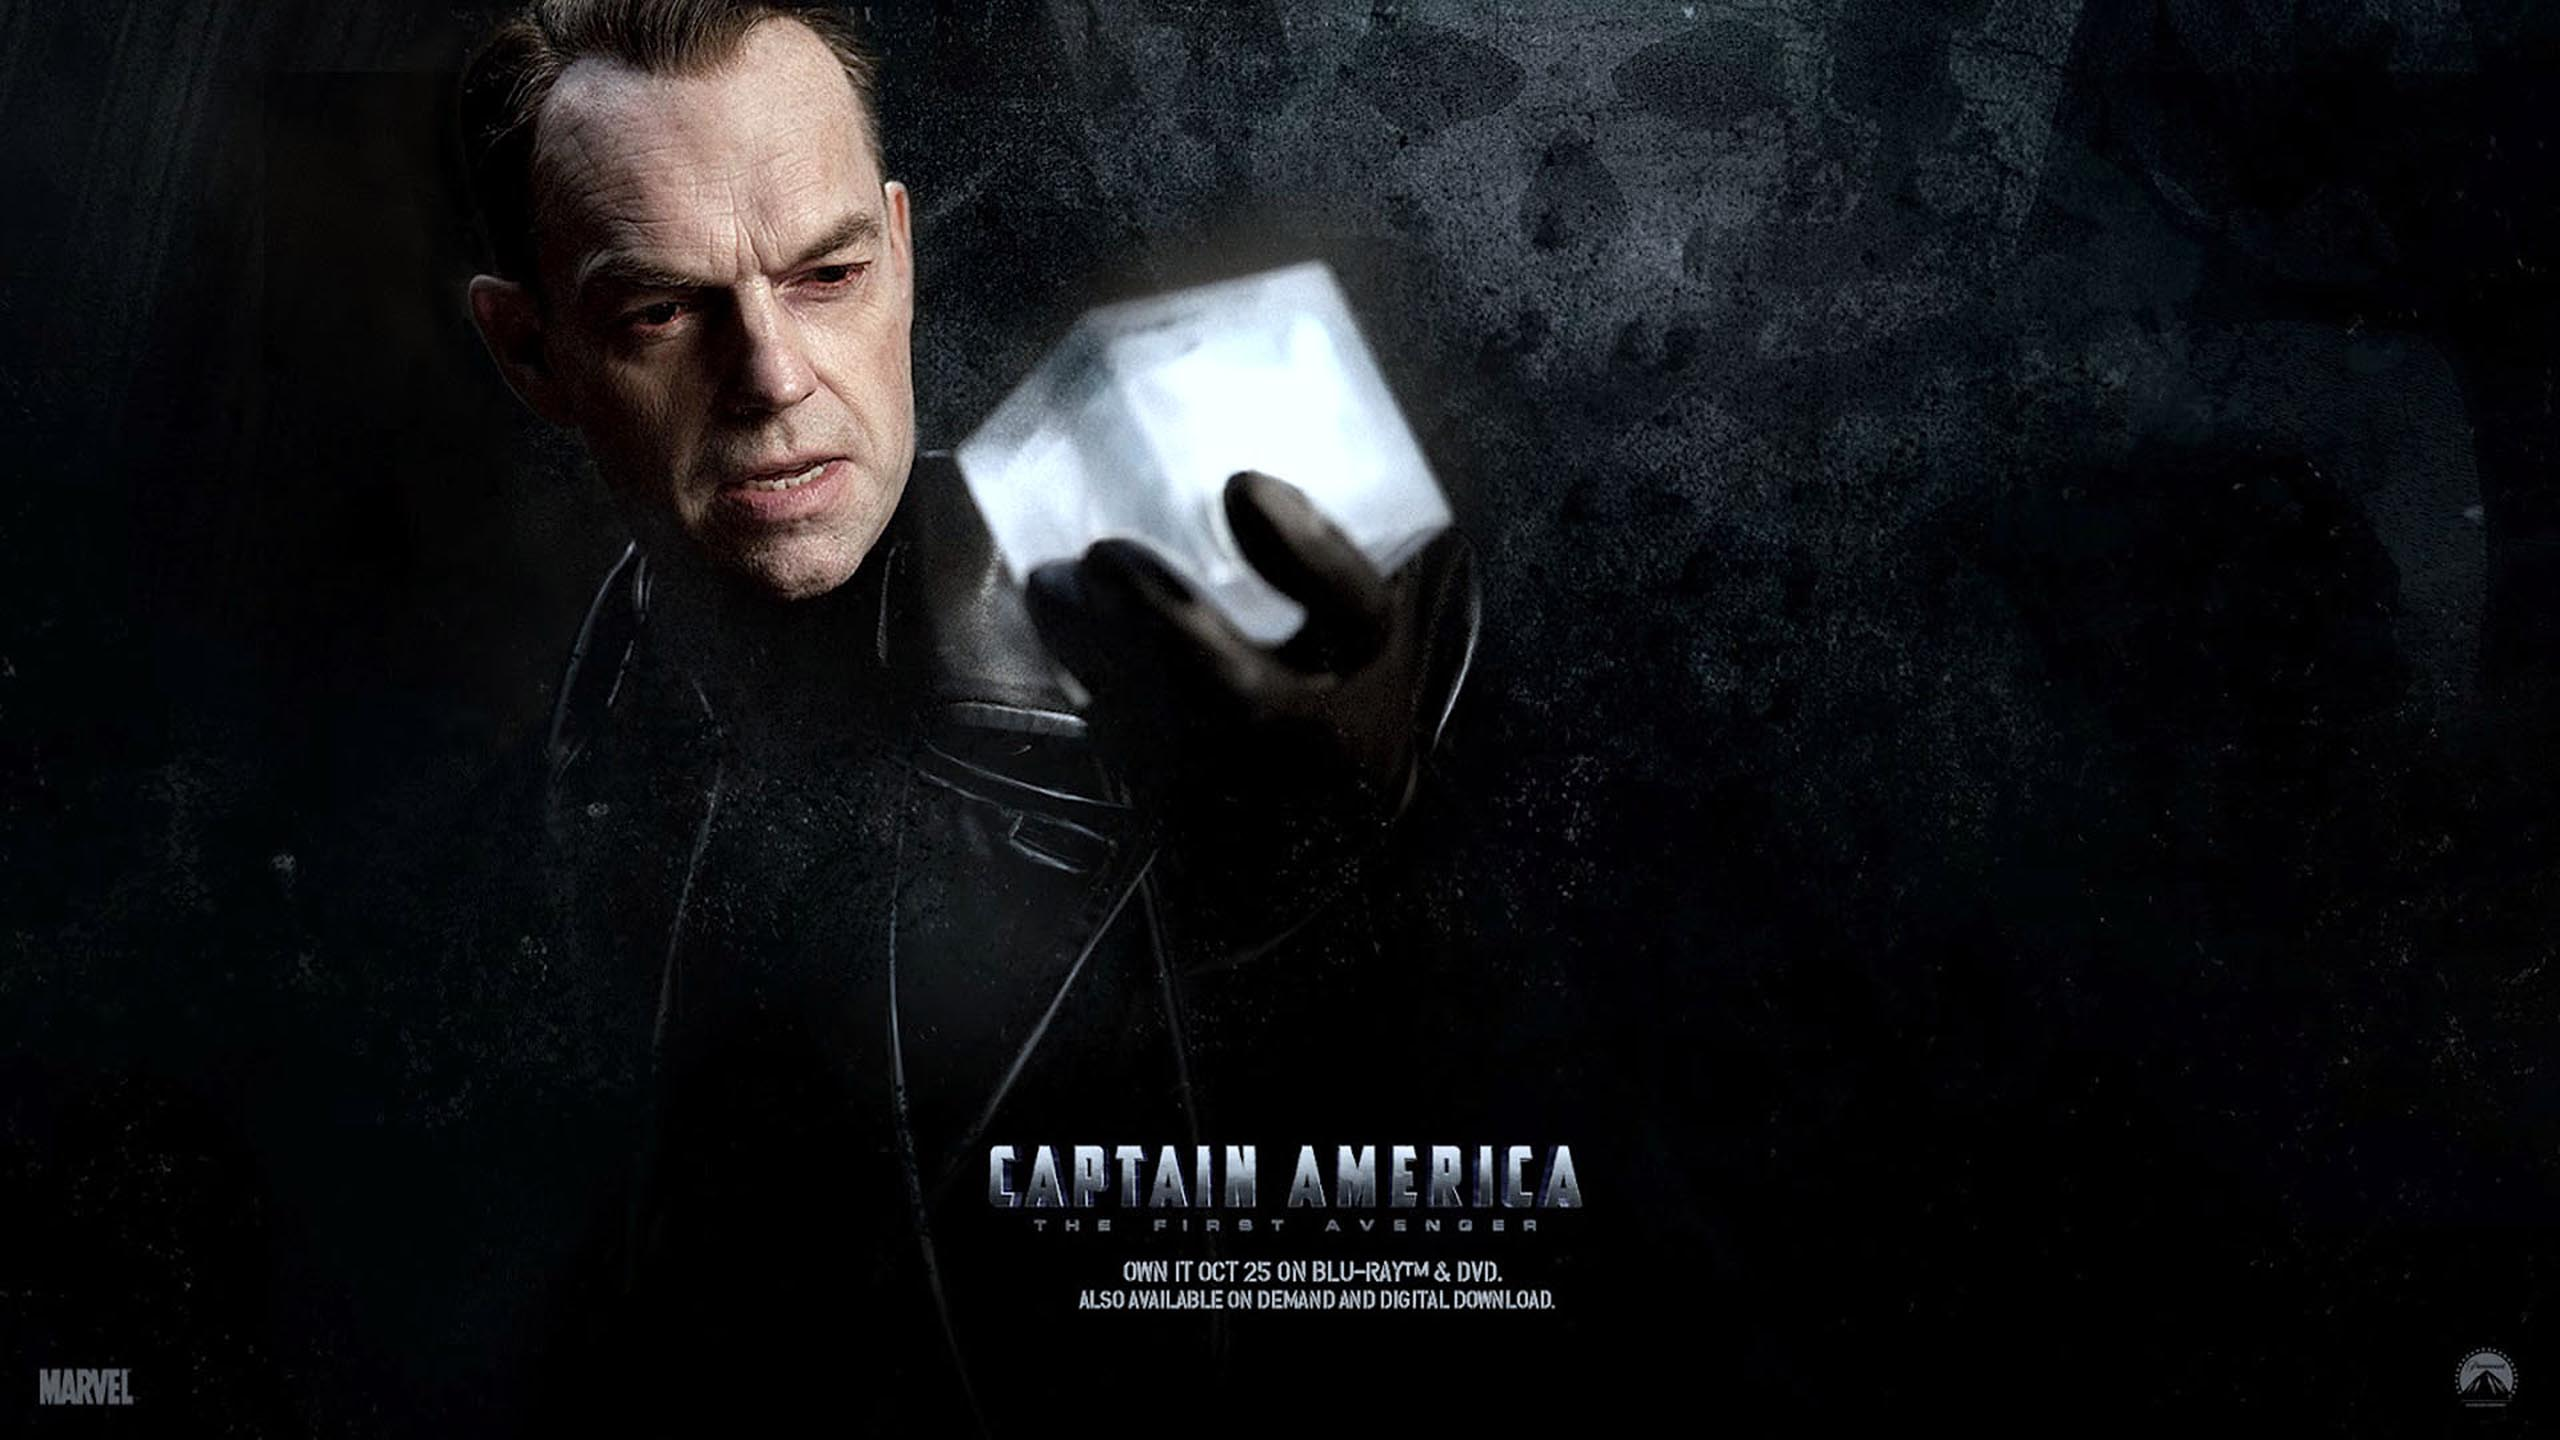 captain-america-shield-http-1080-net-captain-america-shield-html-wallpaper-wp3603908-1